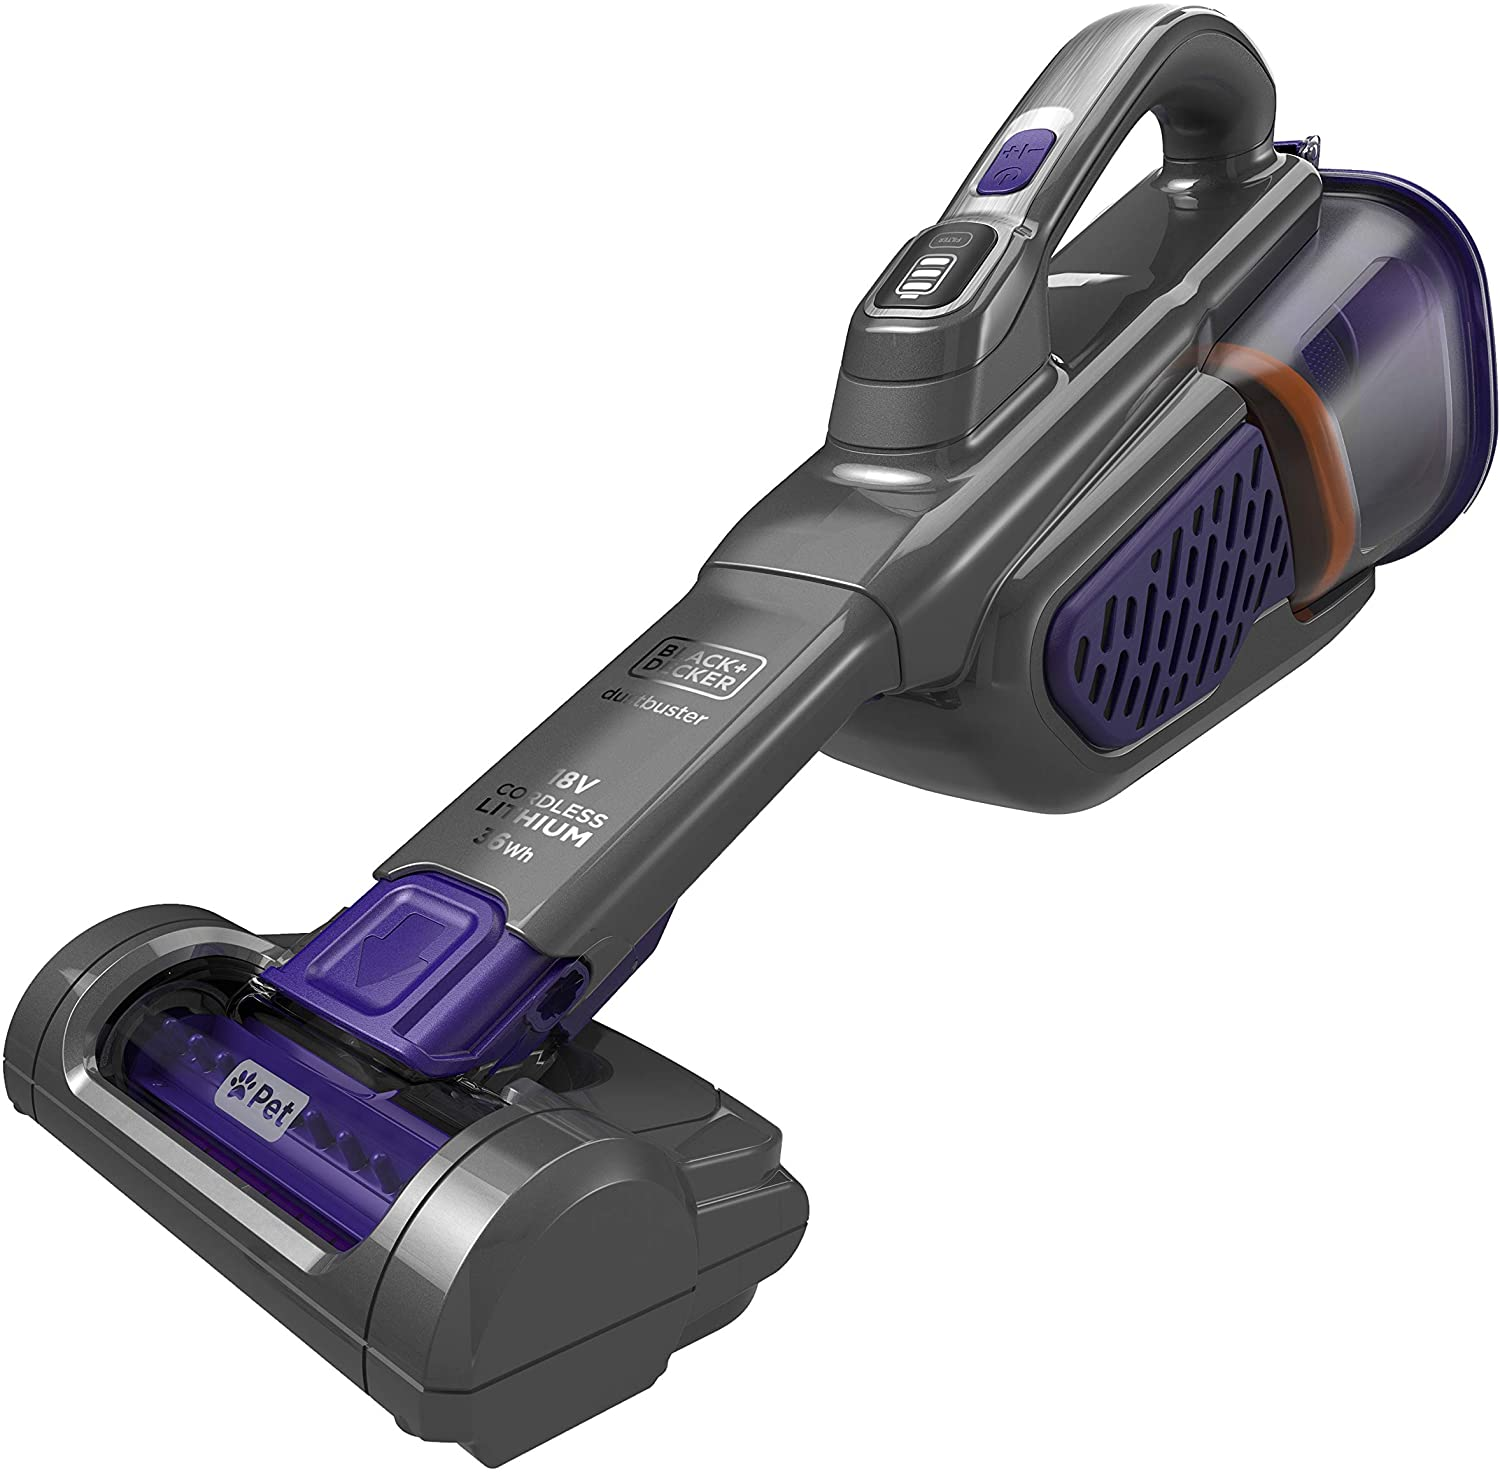 BLACK & DECKER DUSTBUSTER PET 18V 2.5Ah 0.5L